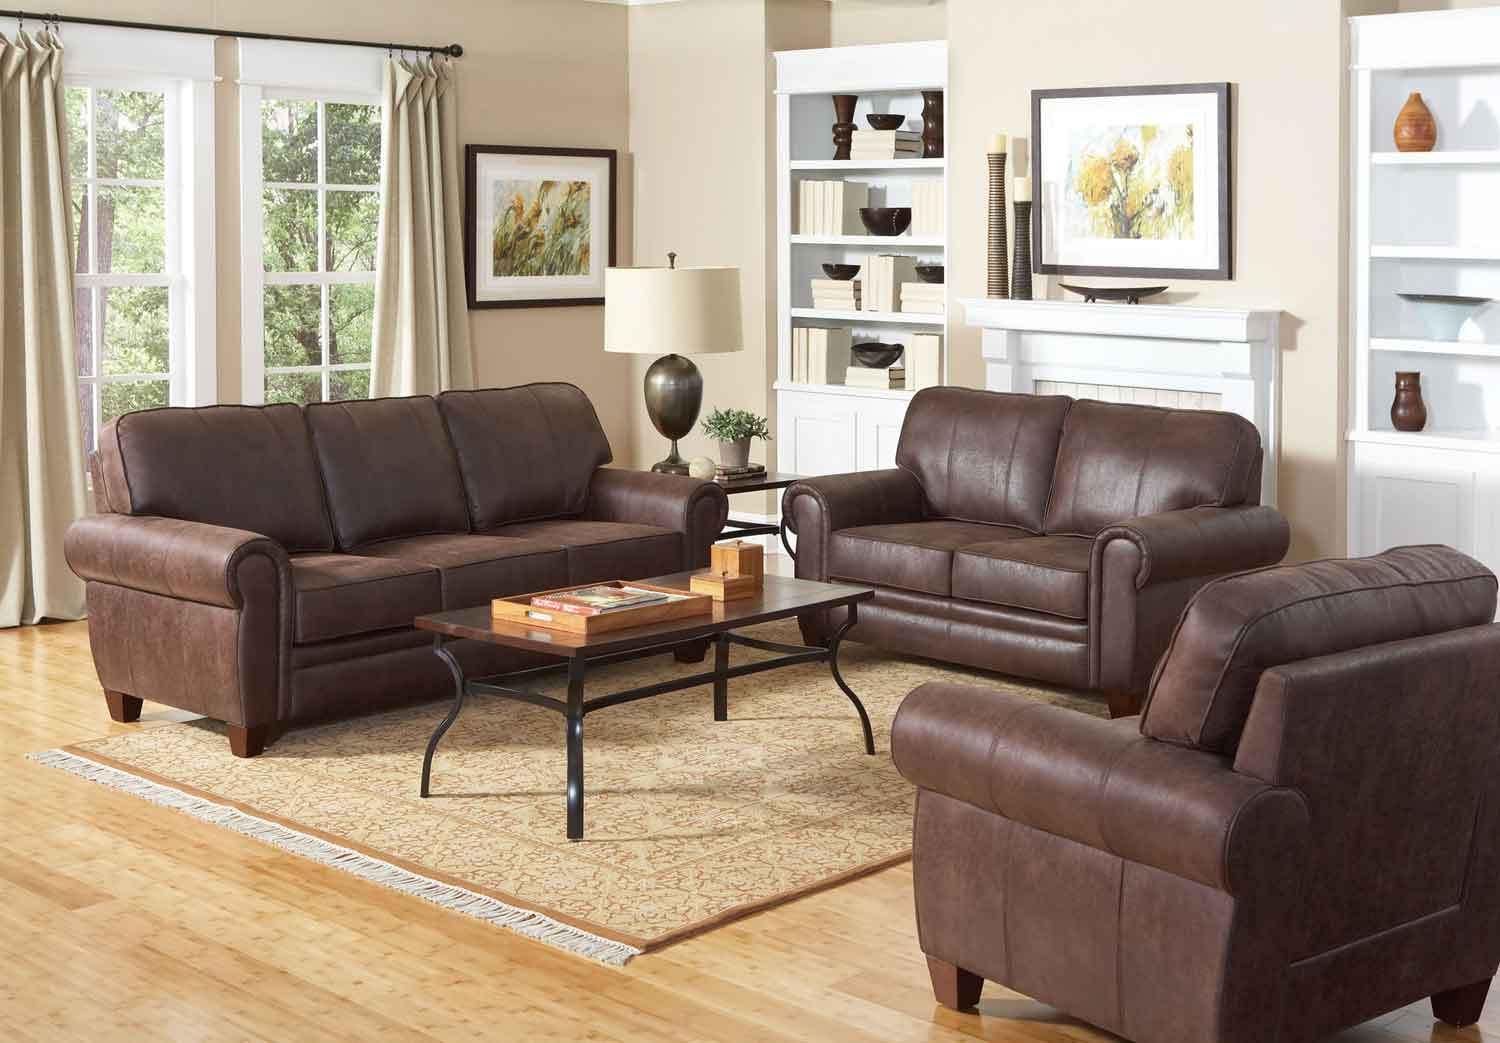 coaster bentley living room set brown 504201 livset at. Black Bedroom Furniture Sets. Home Design Ideas